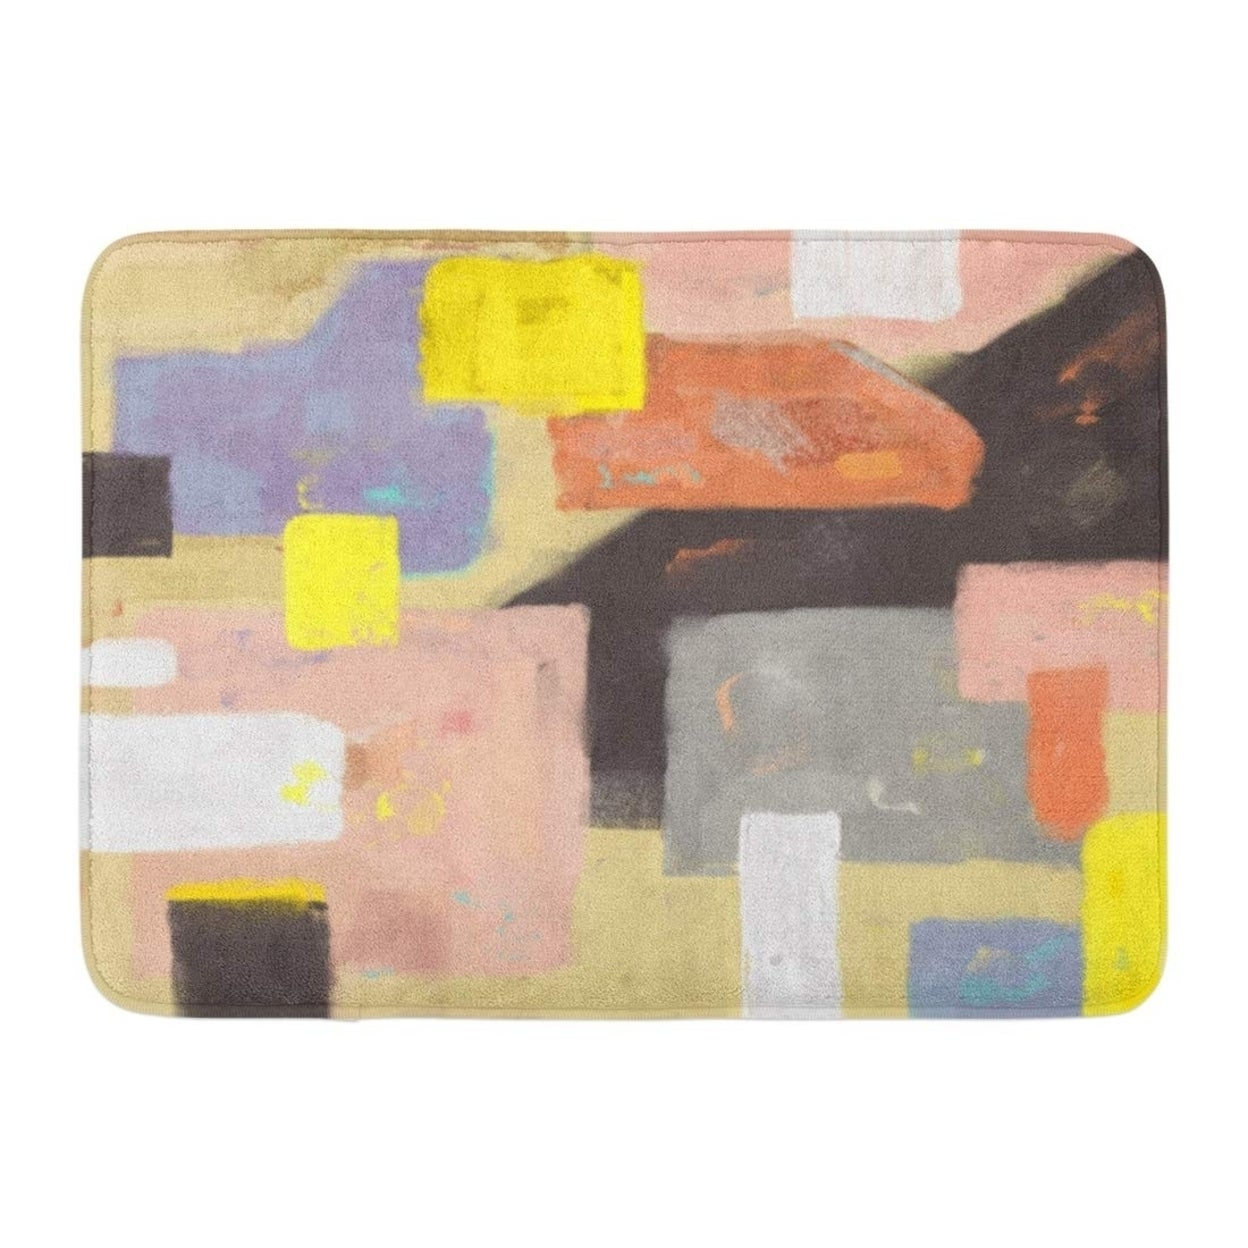 Abstractexpressionism Oil Painting Abstract On Canvas Artistic Brush Color Doormat Floor Rug Bath Mat 23 6x15 7 Inch Multi On Sale Overstock 31779764